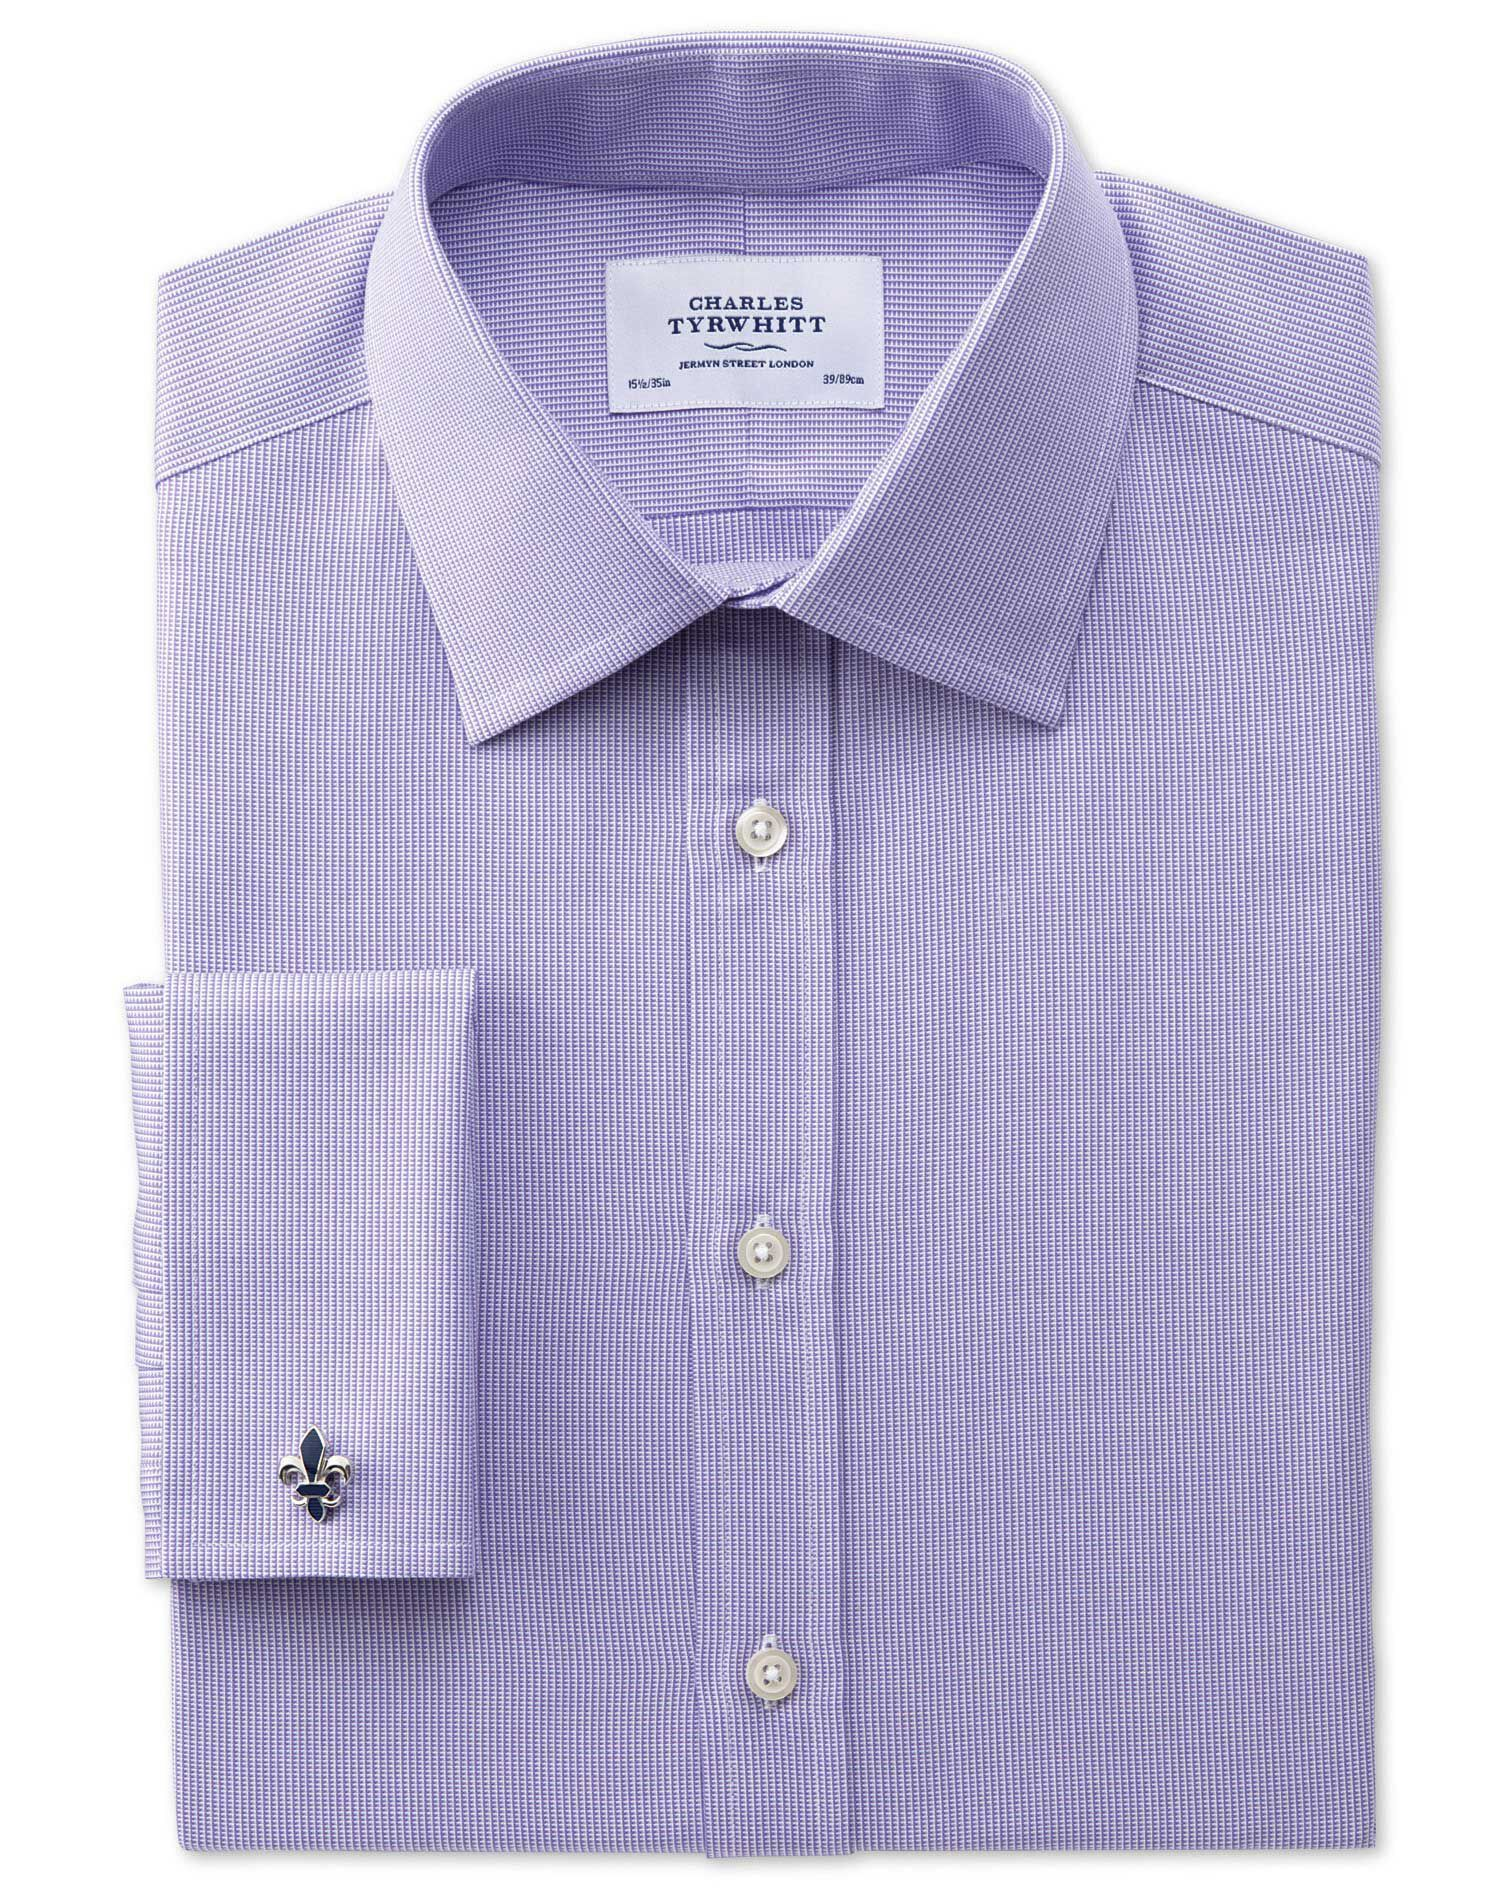 Slim Fit Oxford Lilac Cotton Formal Shirt Double Cuff Size 17.5/34 by Charles Tyrwhitt